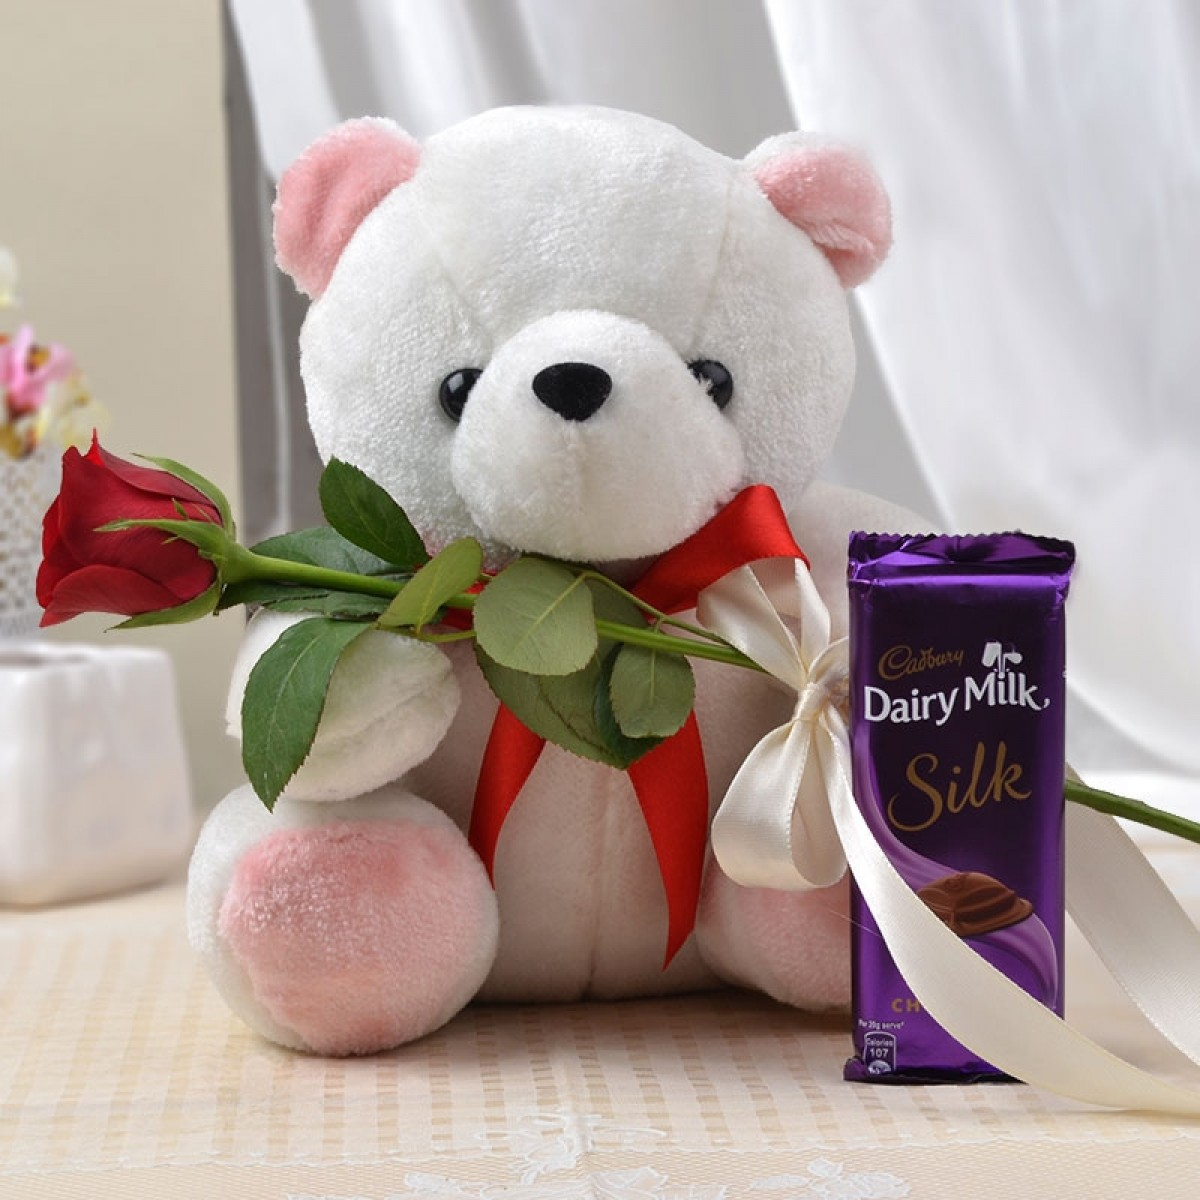 cute teddy bear images for whatsapp dp download